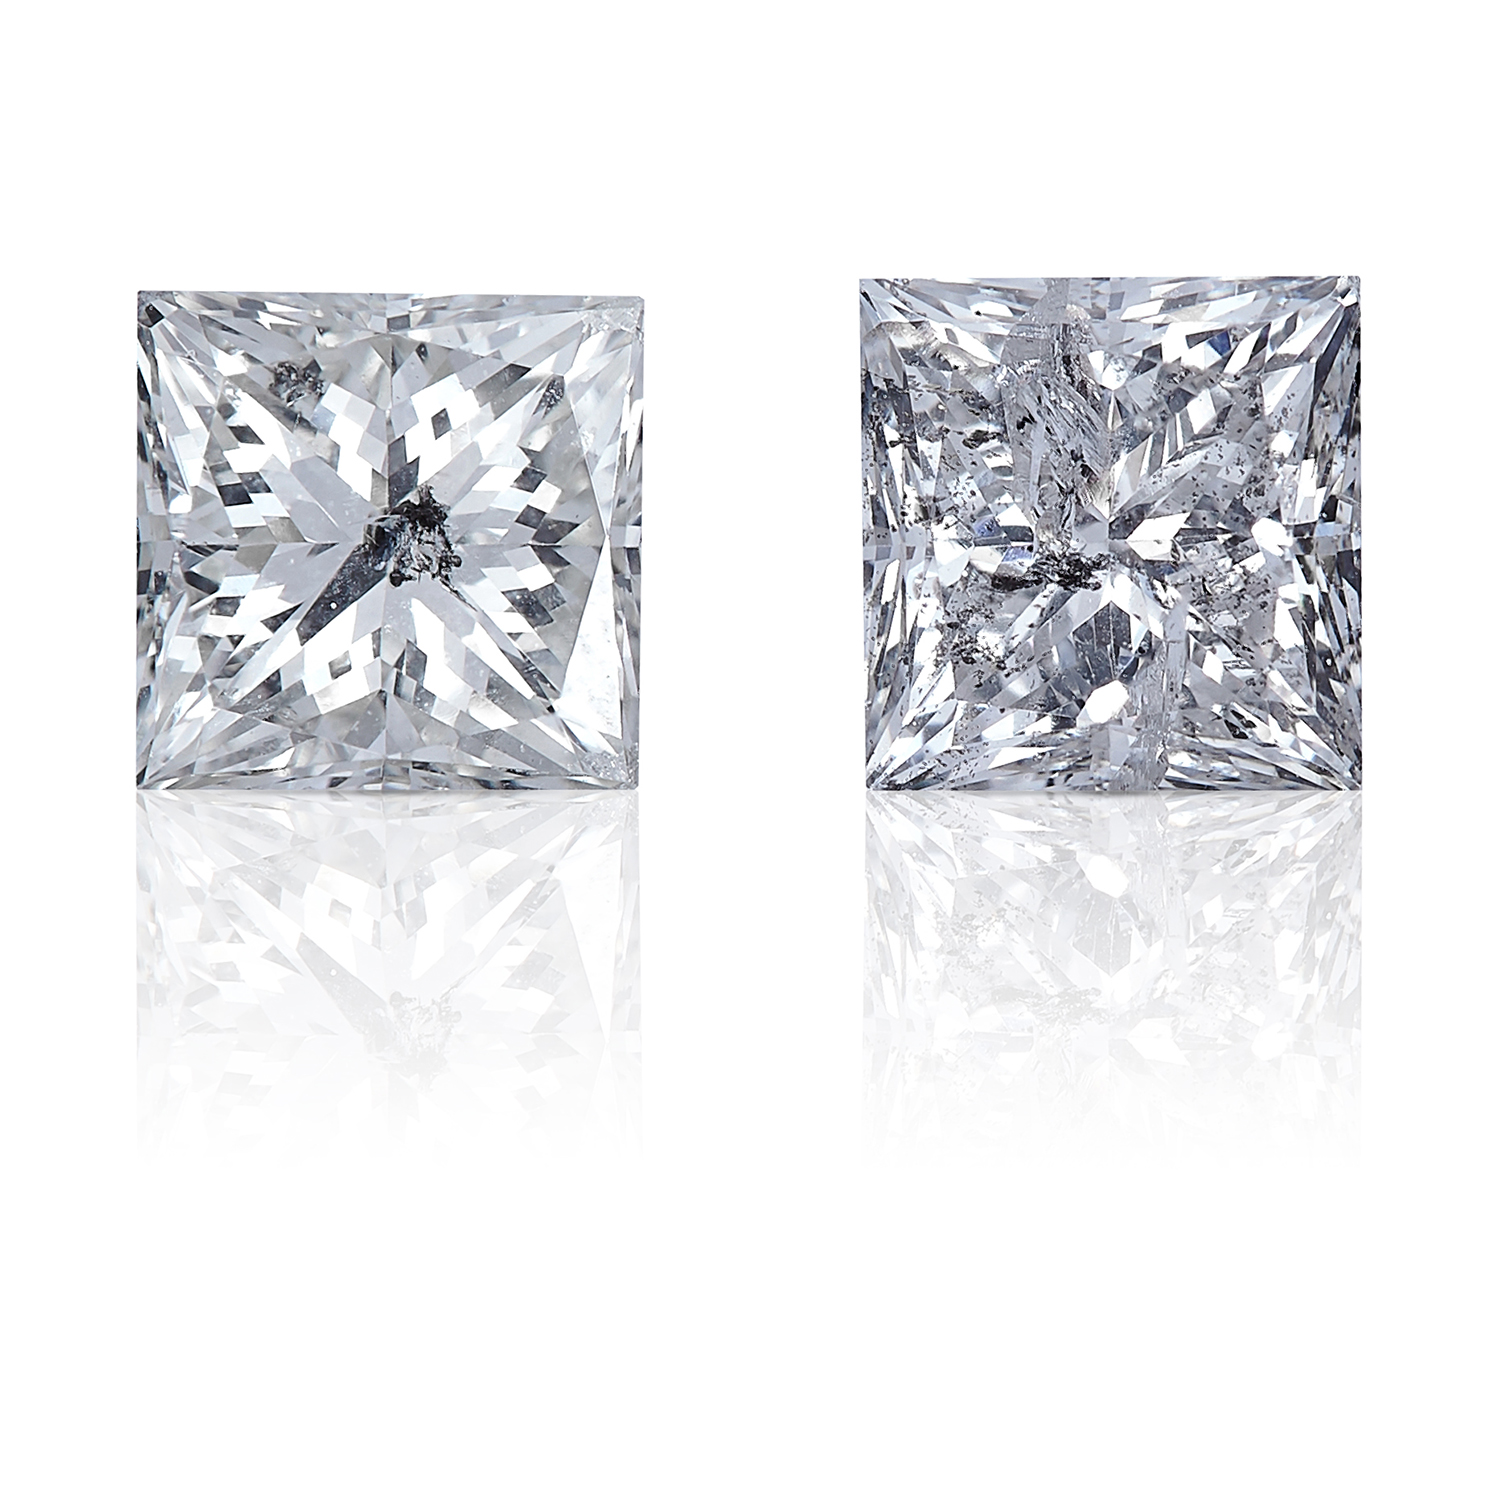 TWO SQUARE MODIFIED BRILLIANT CUT / PRINCESS CUT DIAMONDS, TOTALLING 1.09cts, UNMOUNTED.